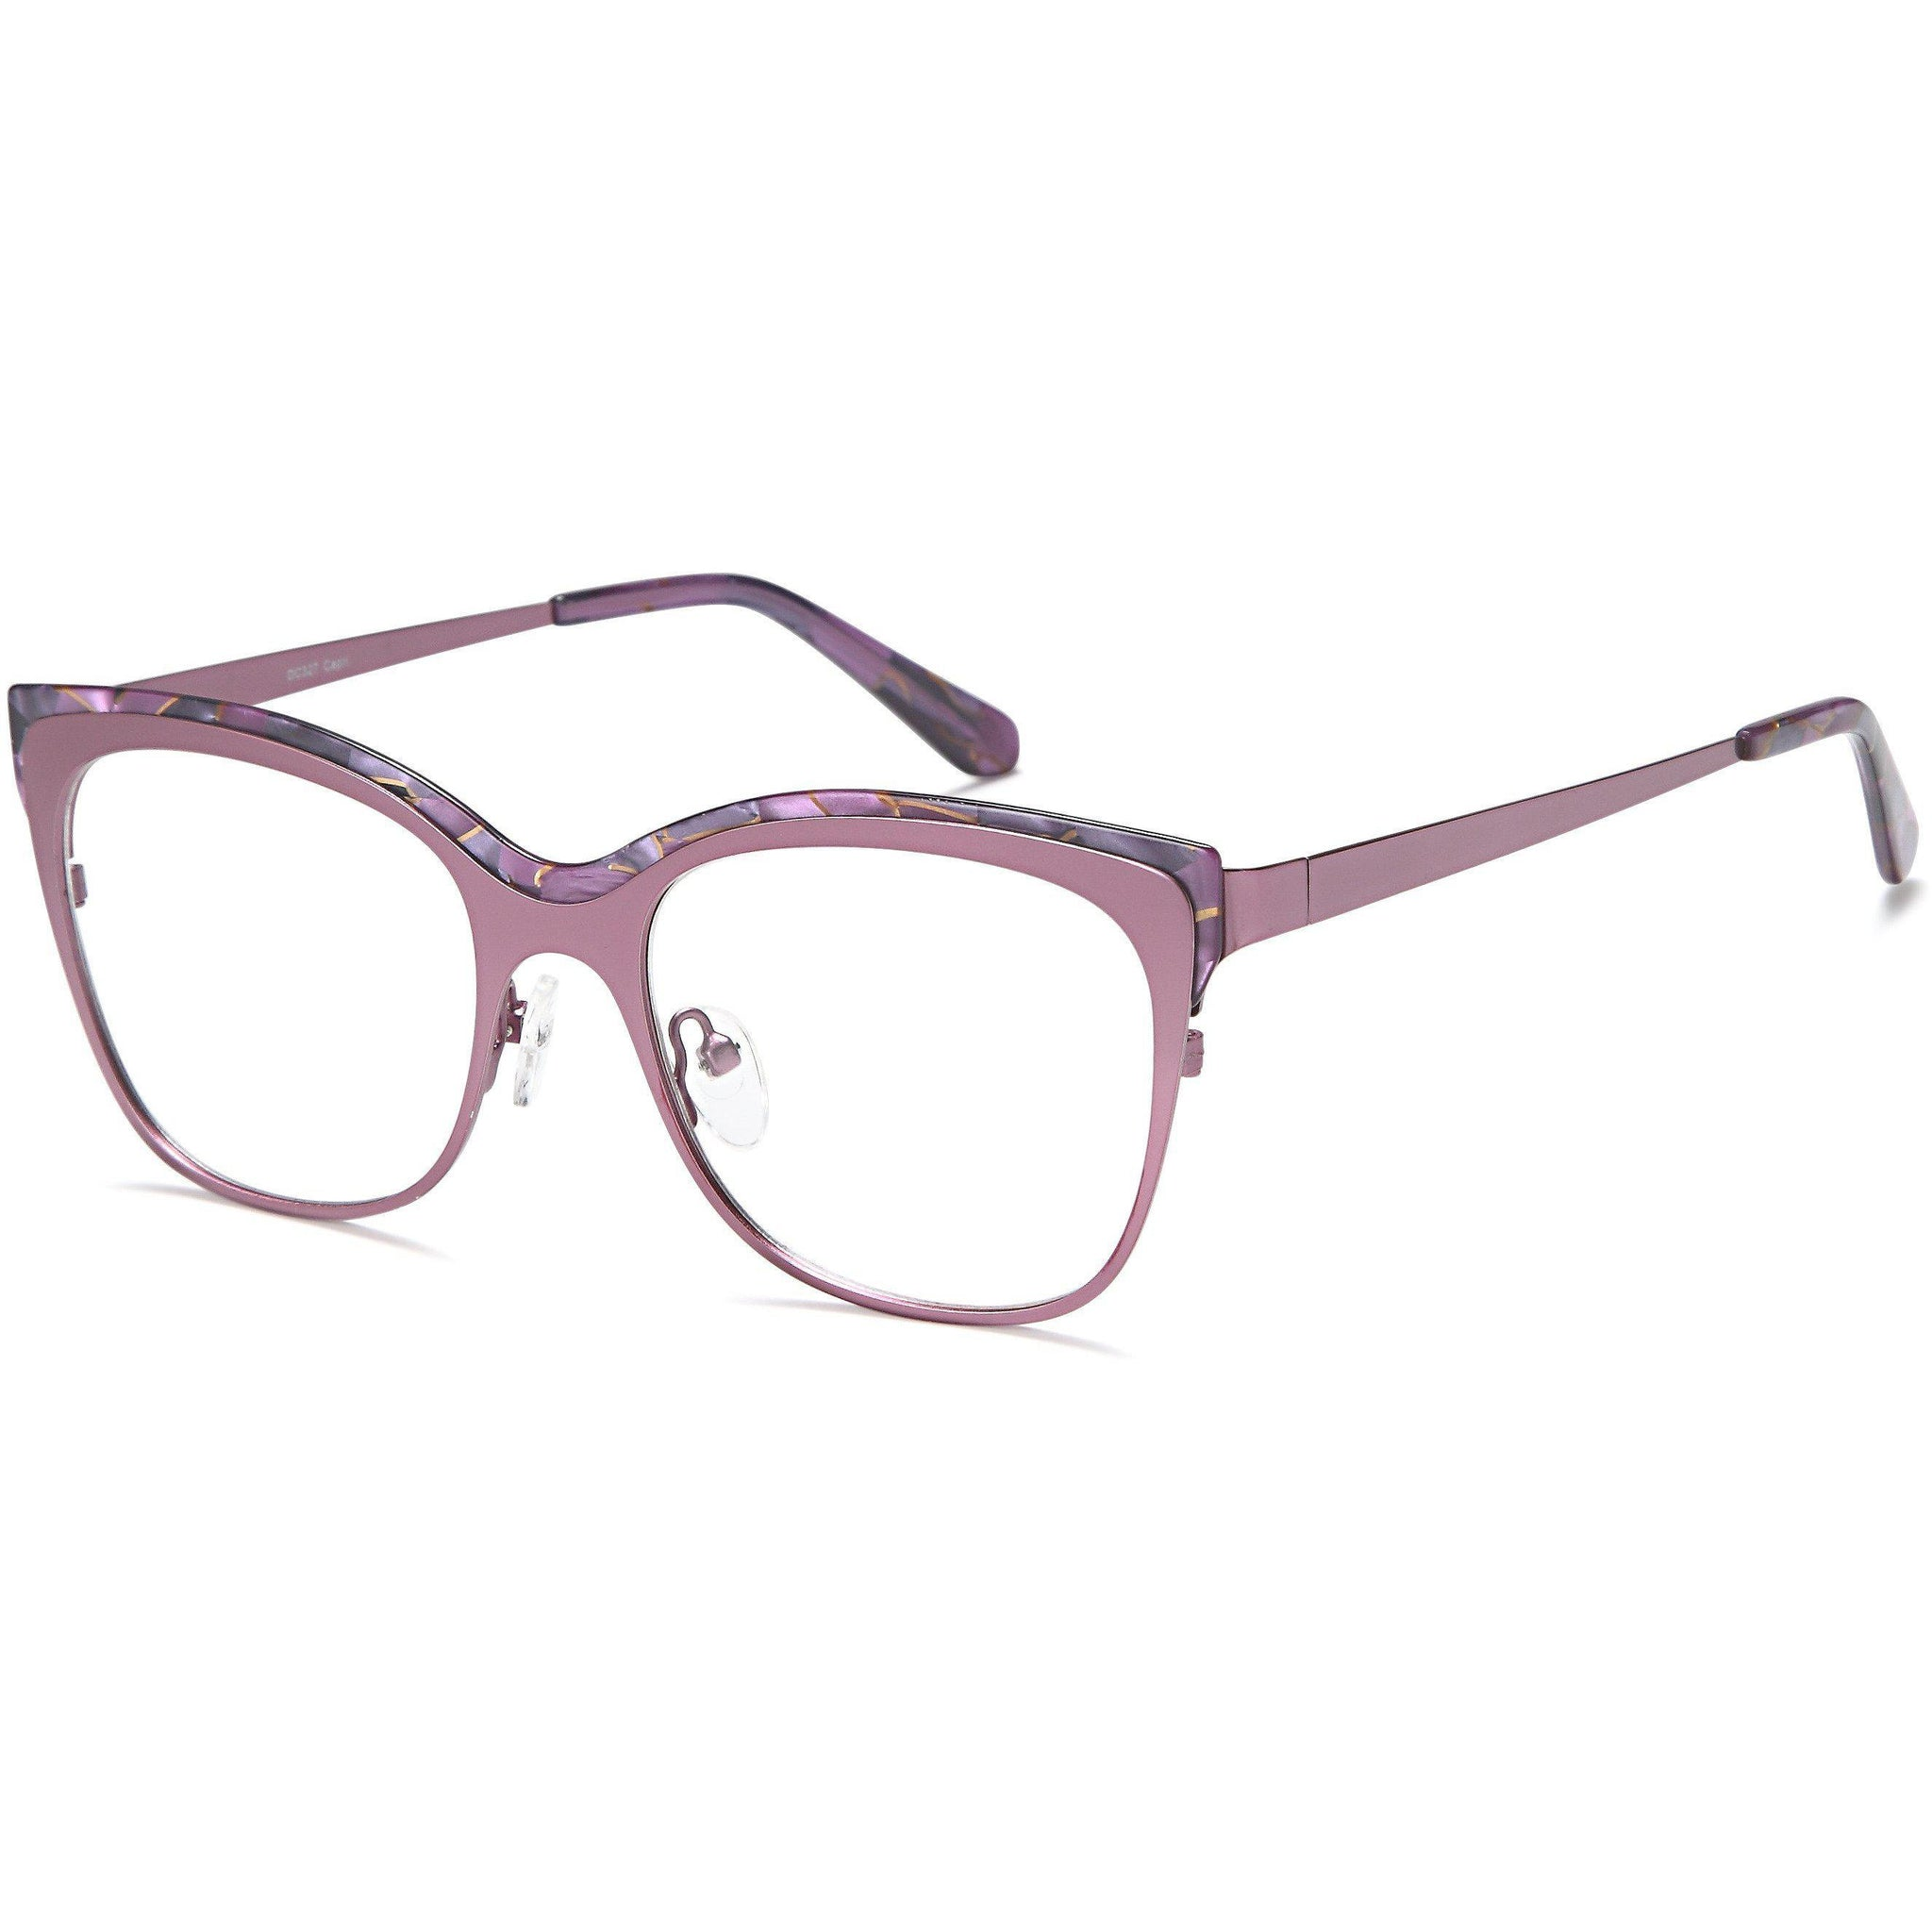 Di Caprio Prescription Glasses DC 327 Eyeglasses Frame - timetoshade